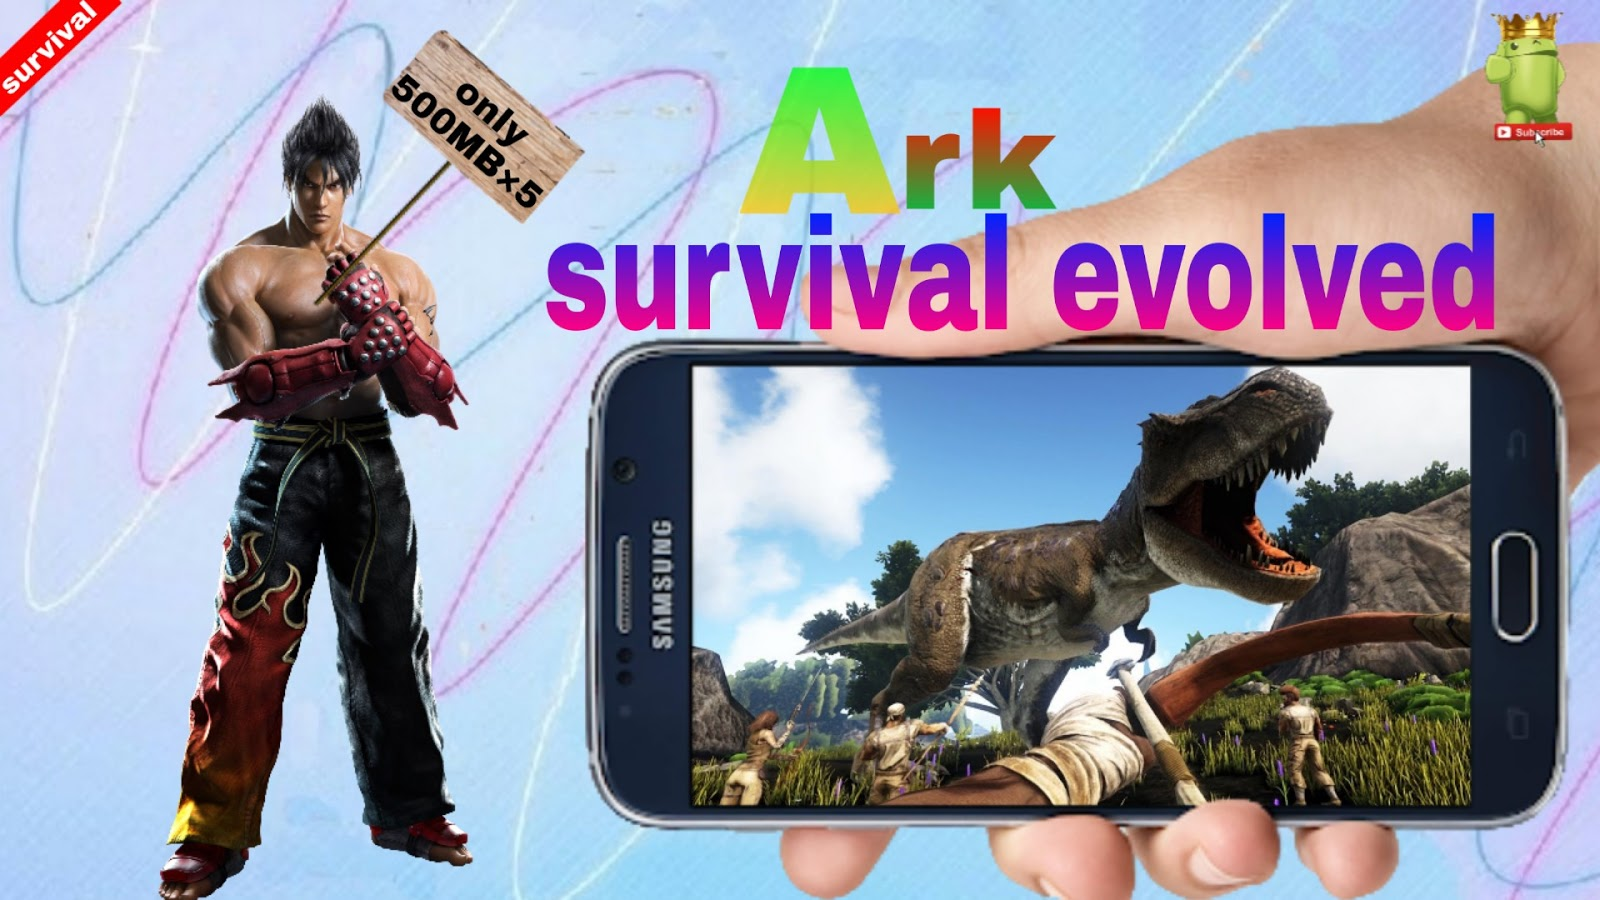 Androidgamer: Download ark survival evolved game in android for free